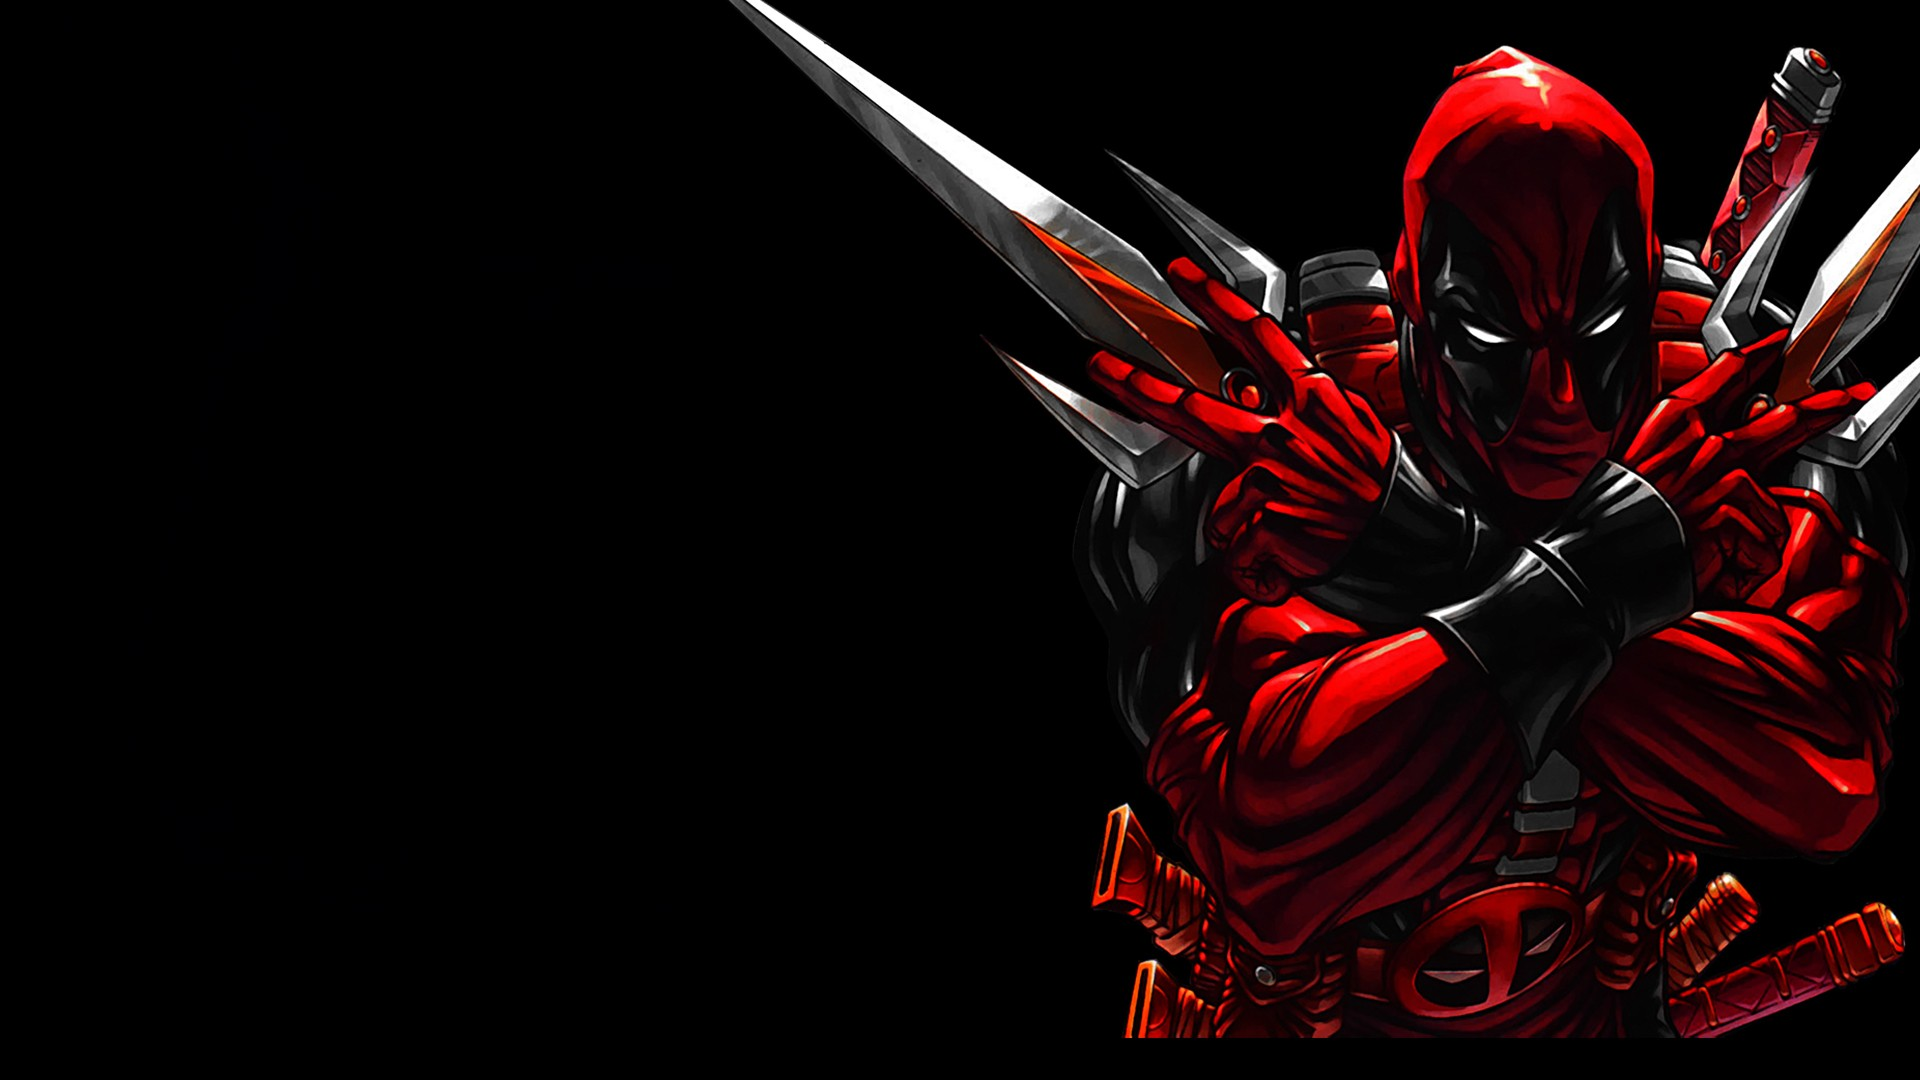 Deadpool Wallpaper Hd Images amp Pictures   Becuo 1920x1080